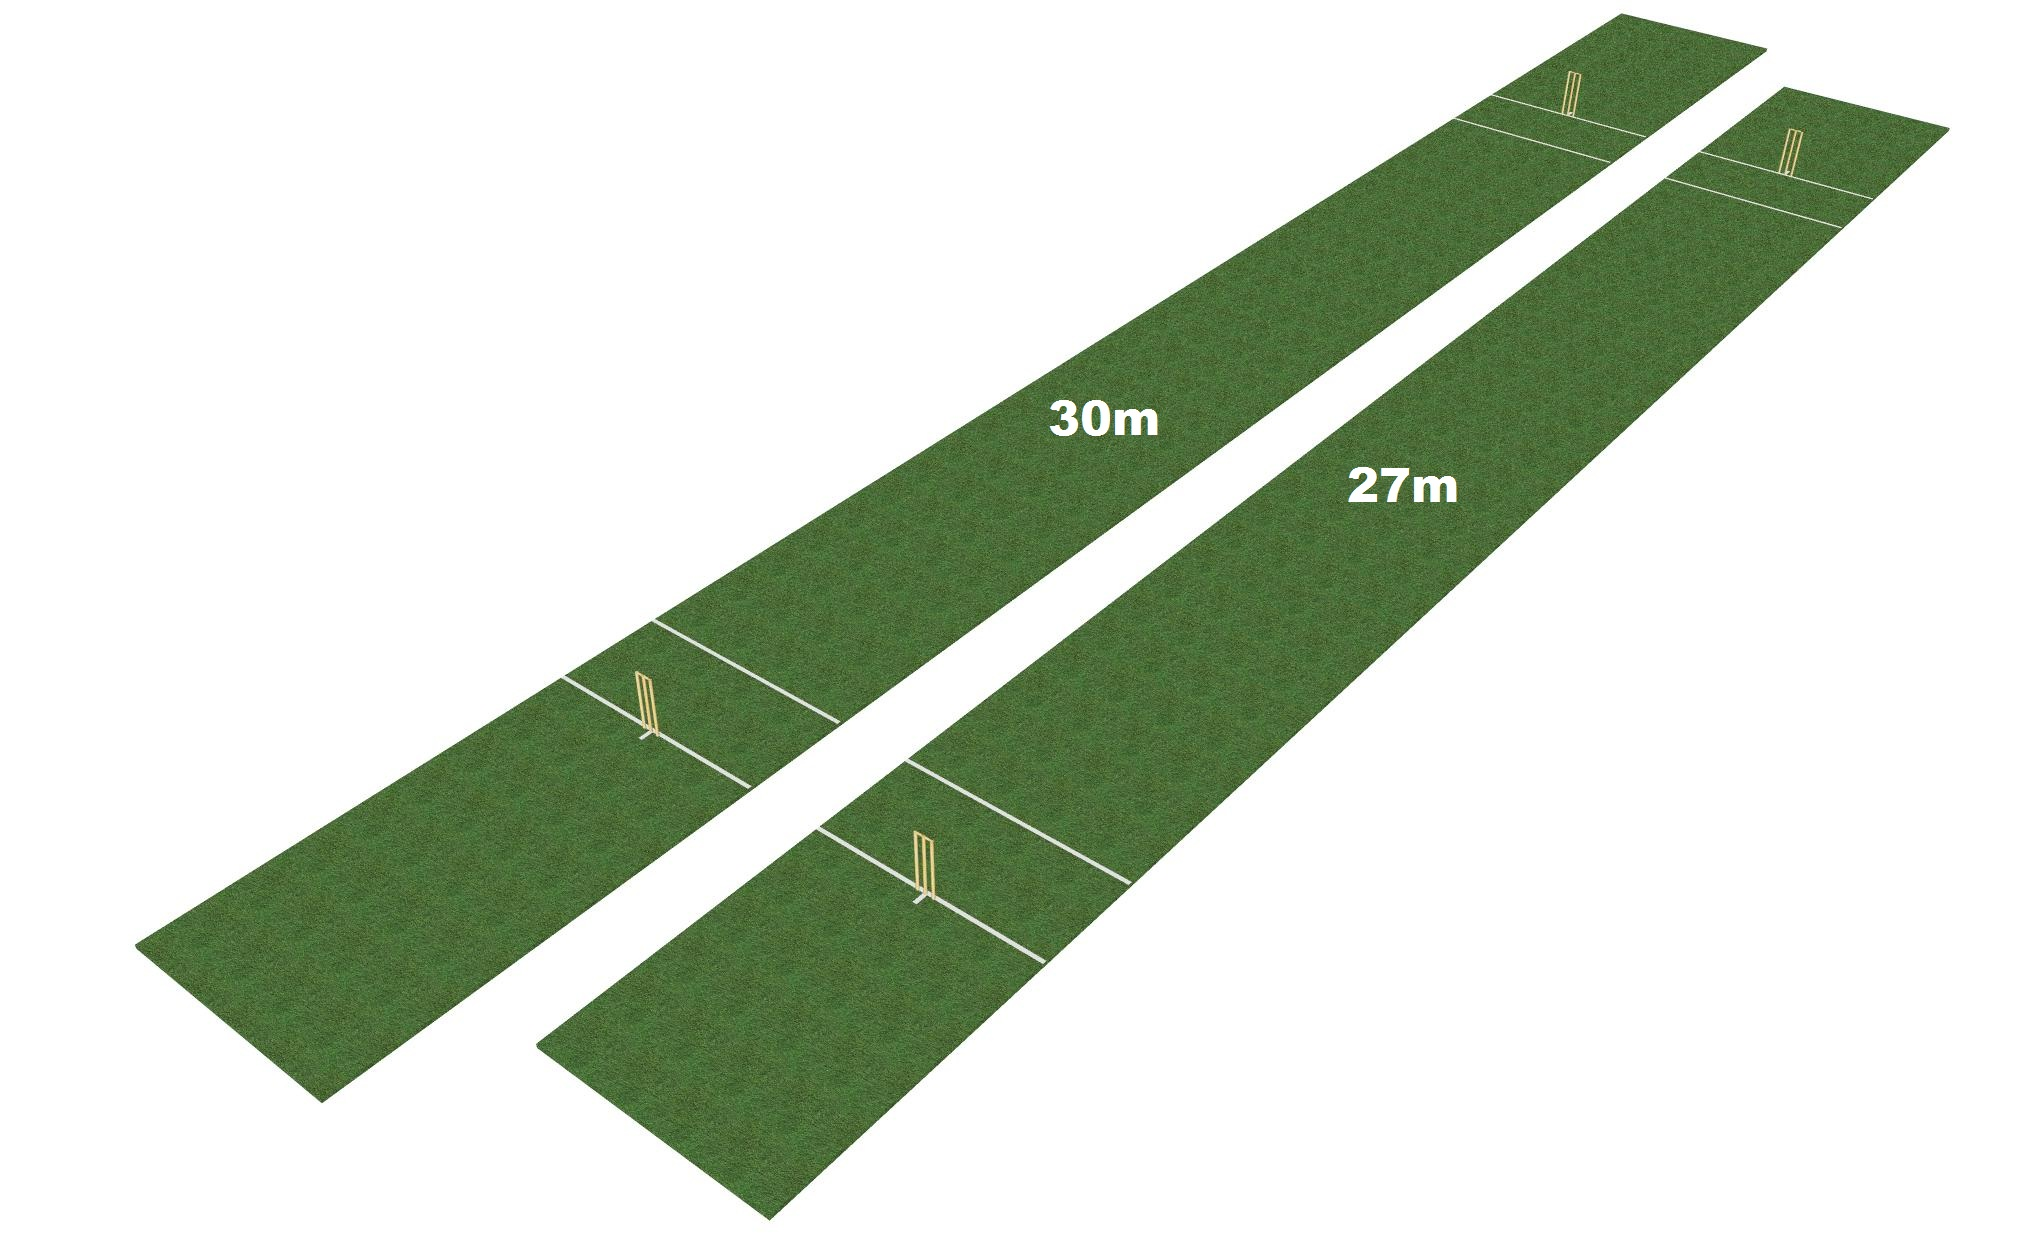 Match Pitch Configurations